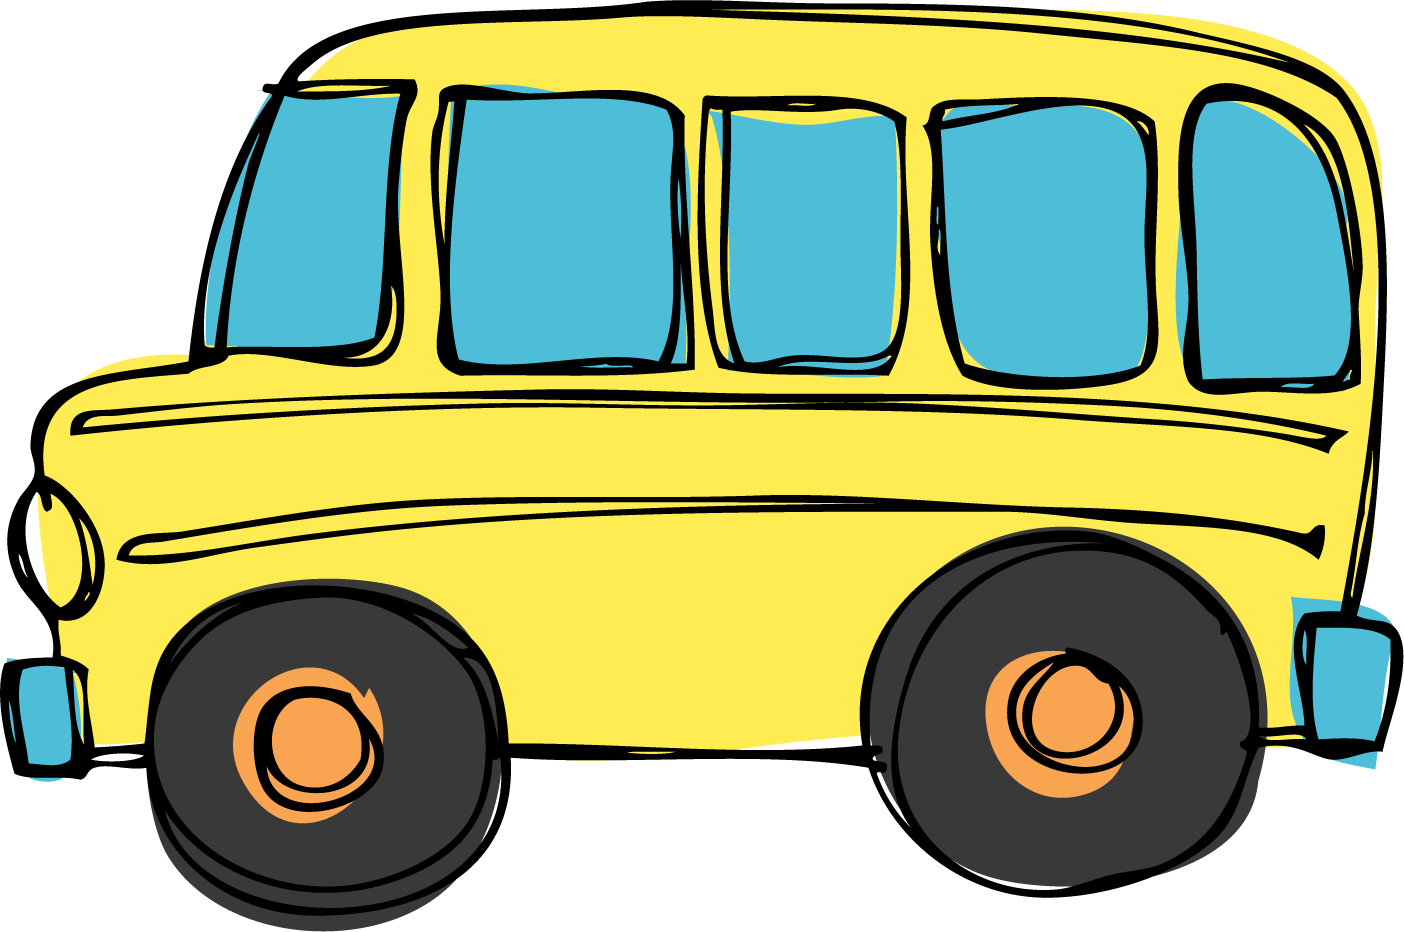 1404x932 Bus Clipart Transparent Background